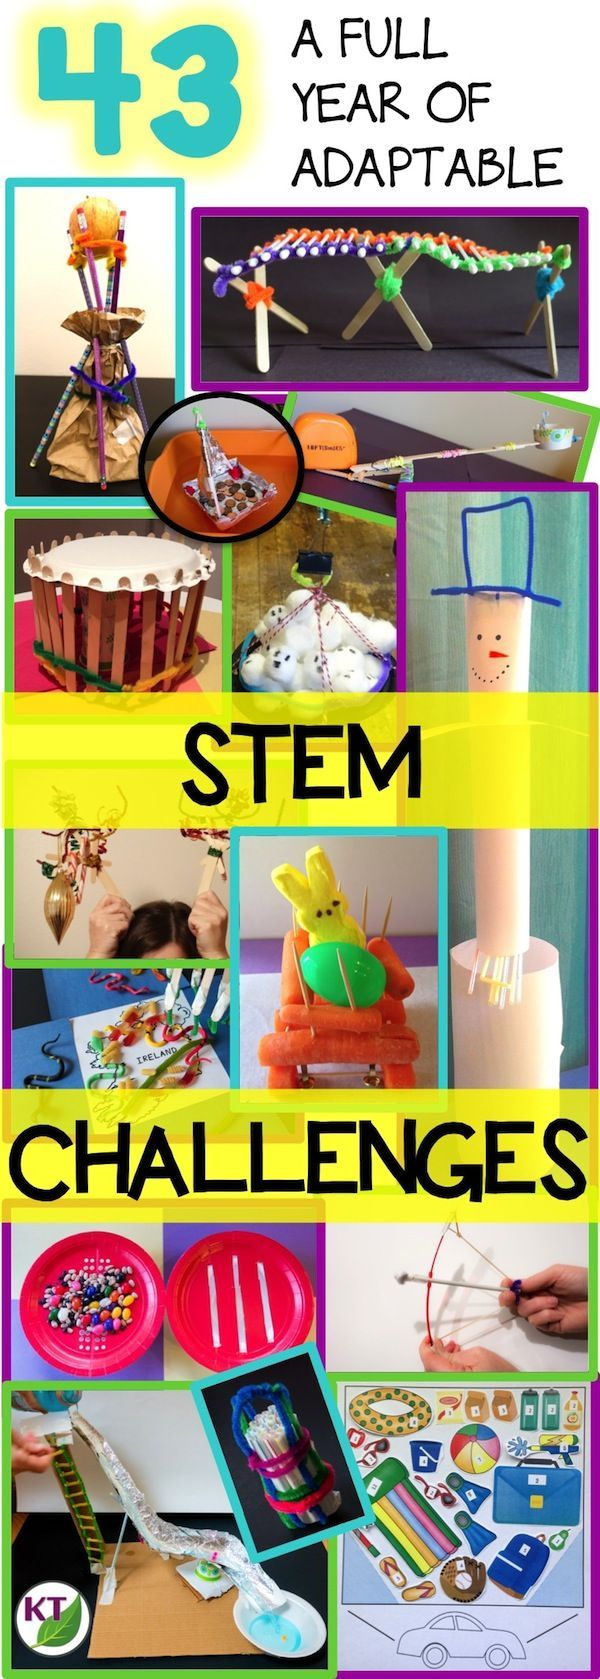 A year of seasonal and anytime STEM challenges: high-engagement, critical thinking, problem solving activities adaptable for grades 2 - 8. Bring excitement and joy back into learning without sacrificing rigor!